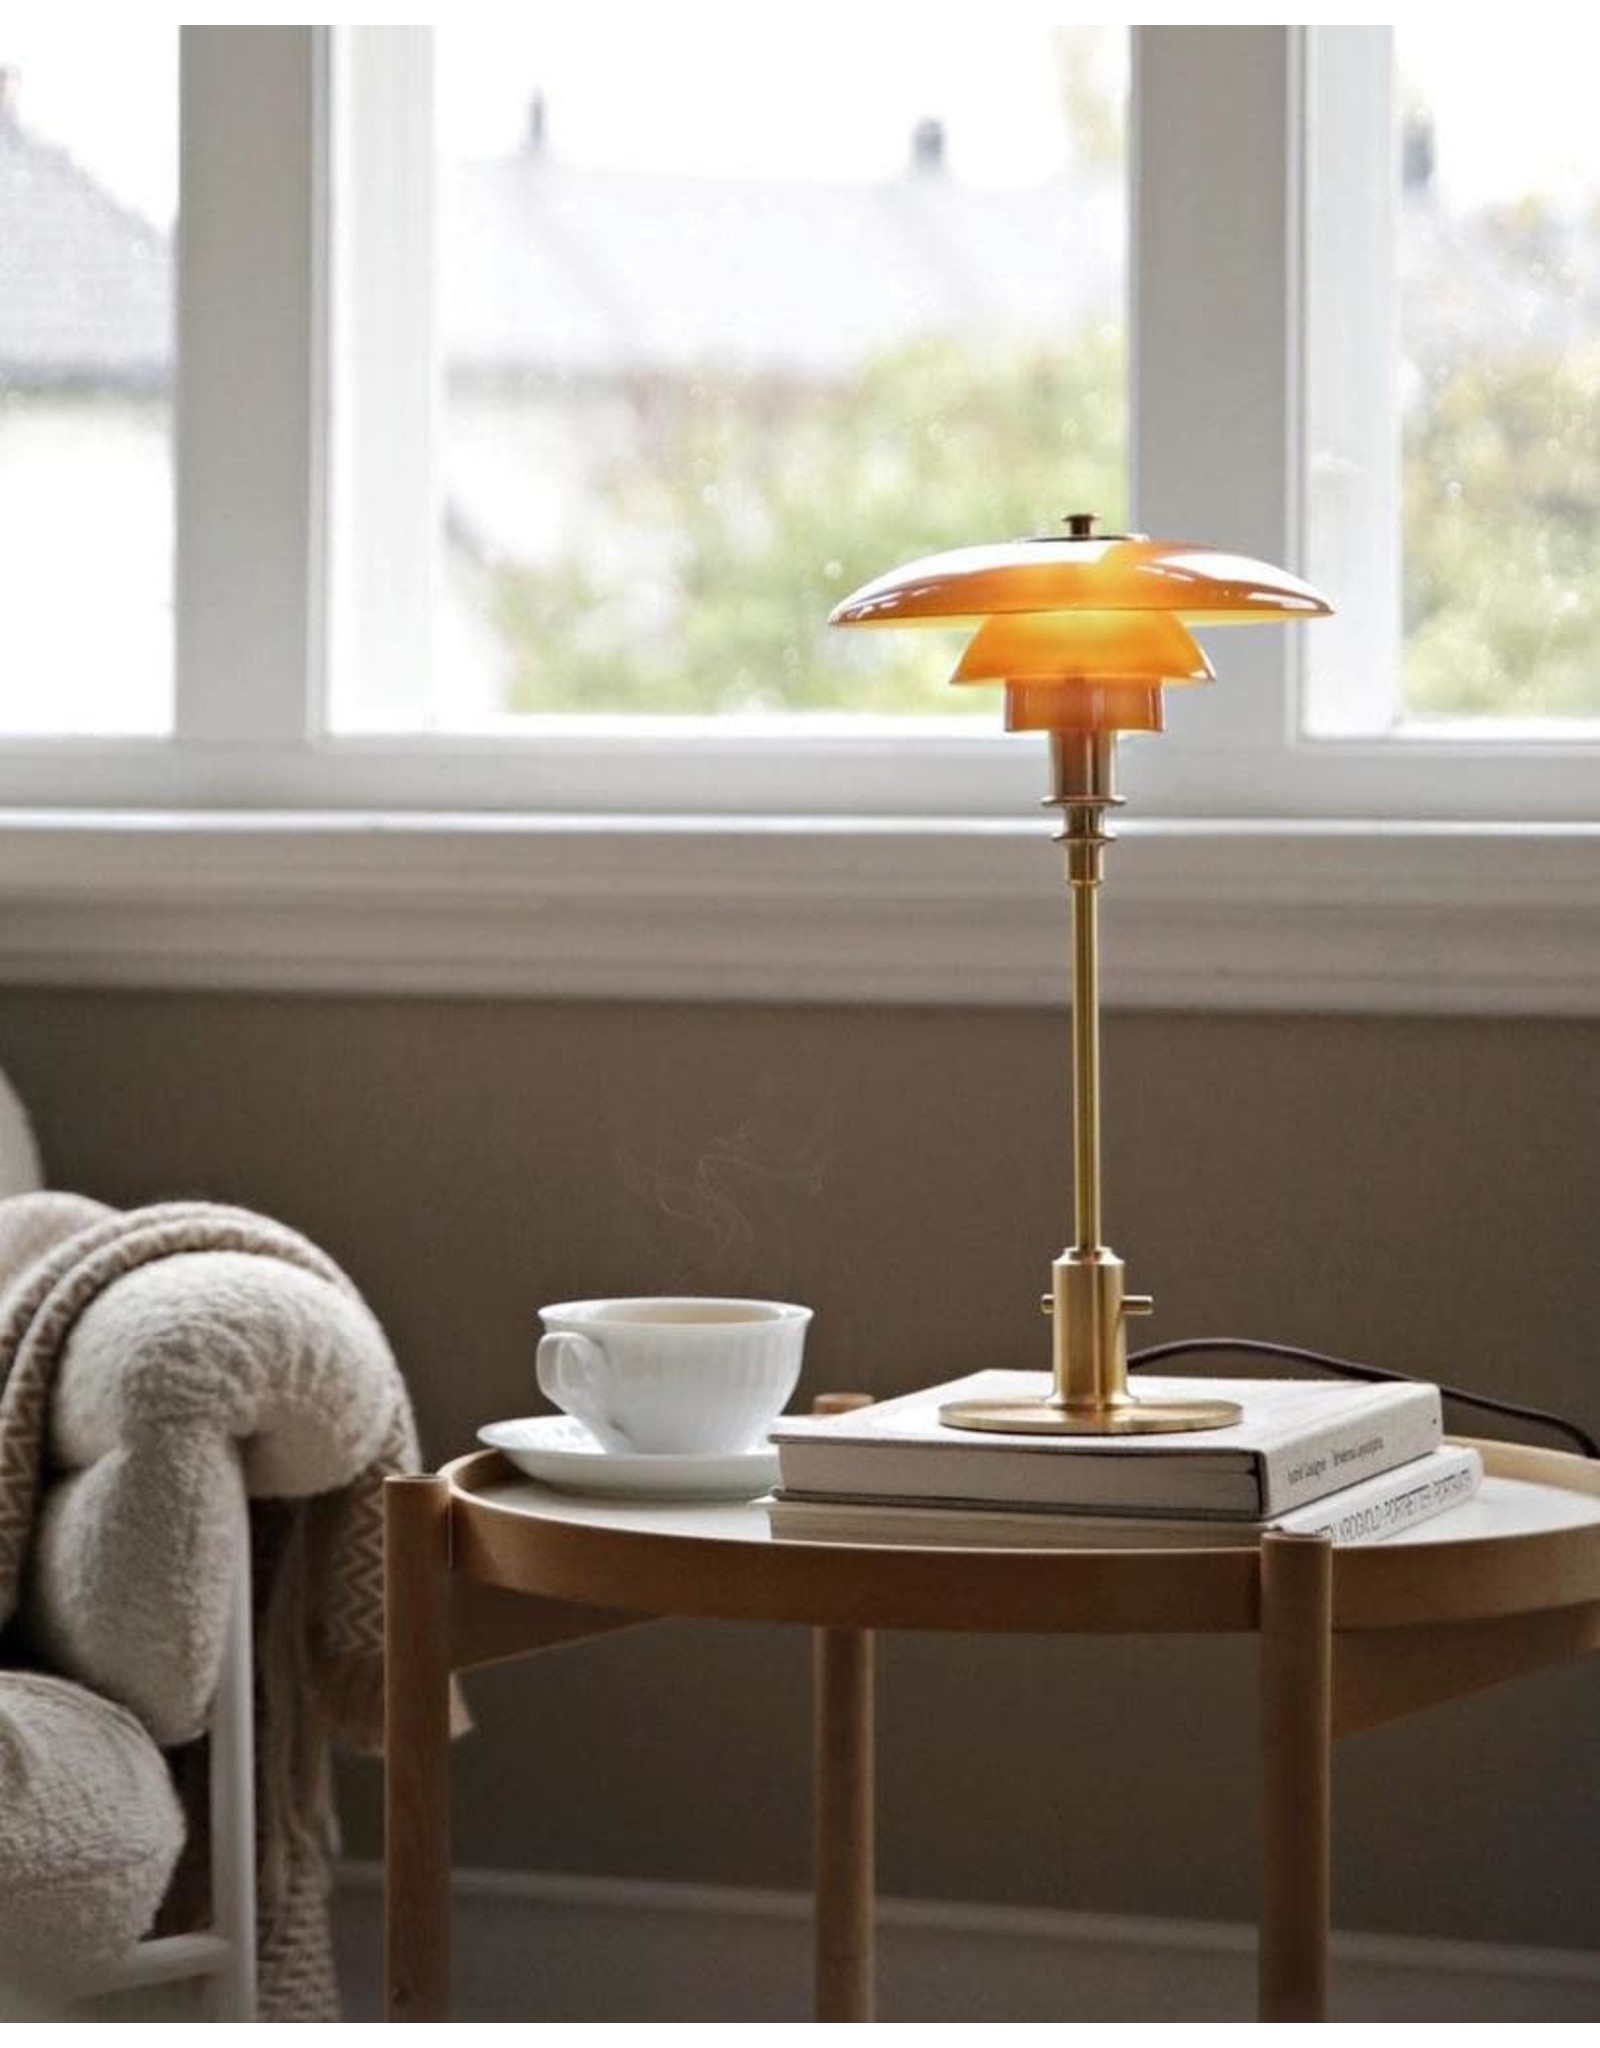 LOUIS POULSEN PH 2/1 TABLE LAMP LIMITED EDITION